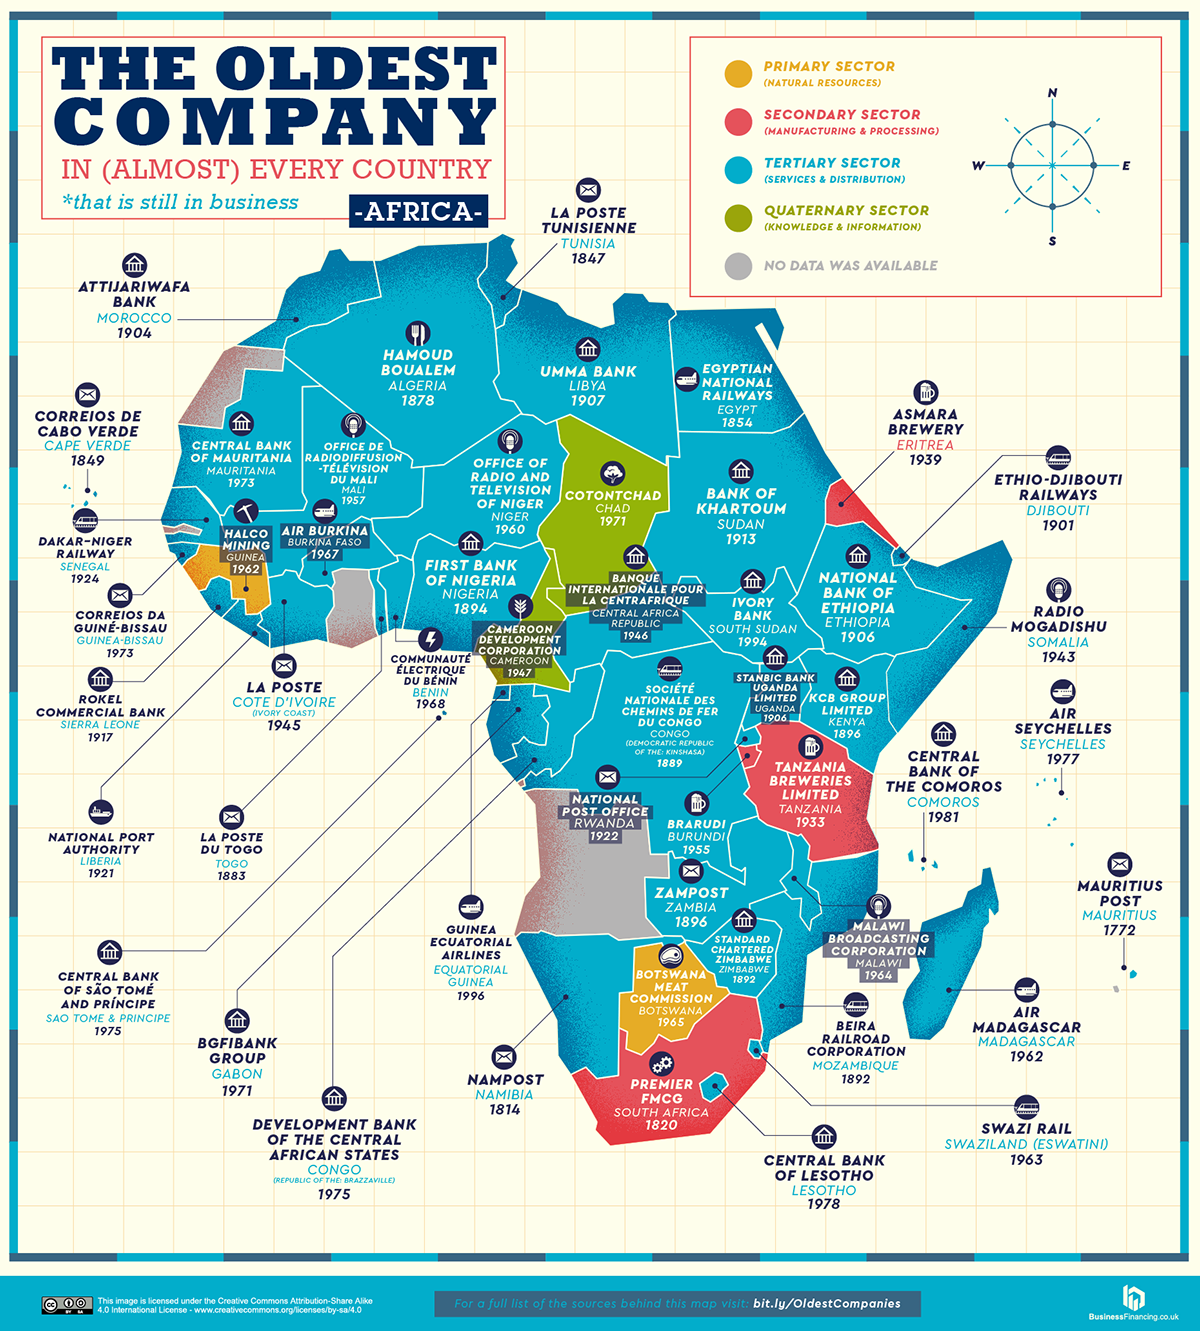 The Oldest Company in Africa